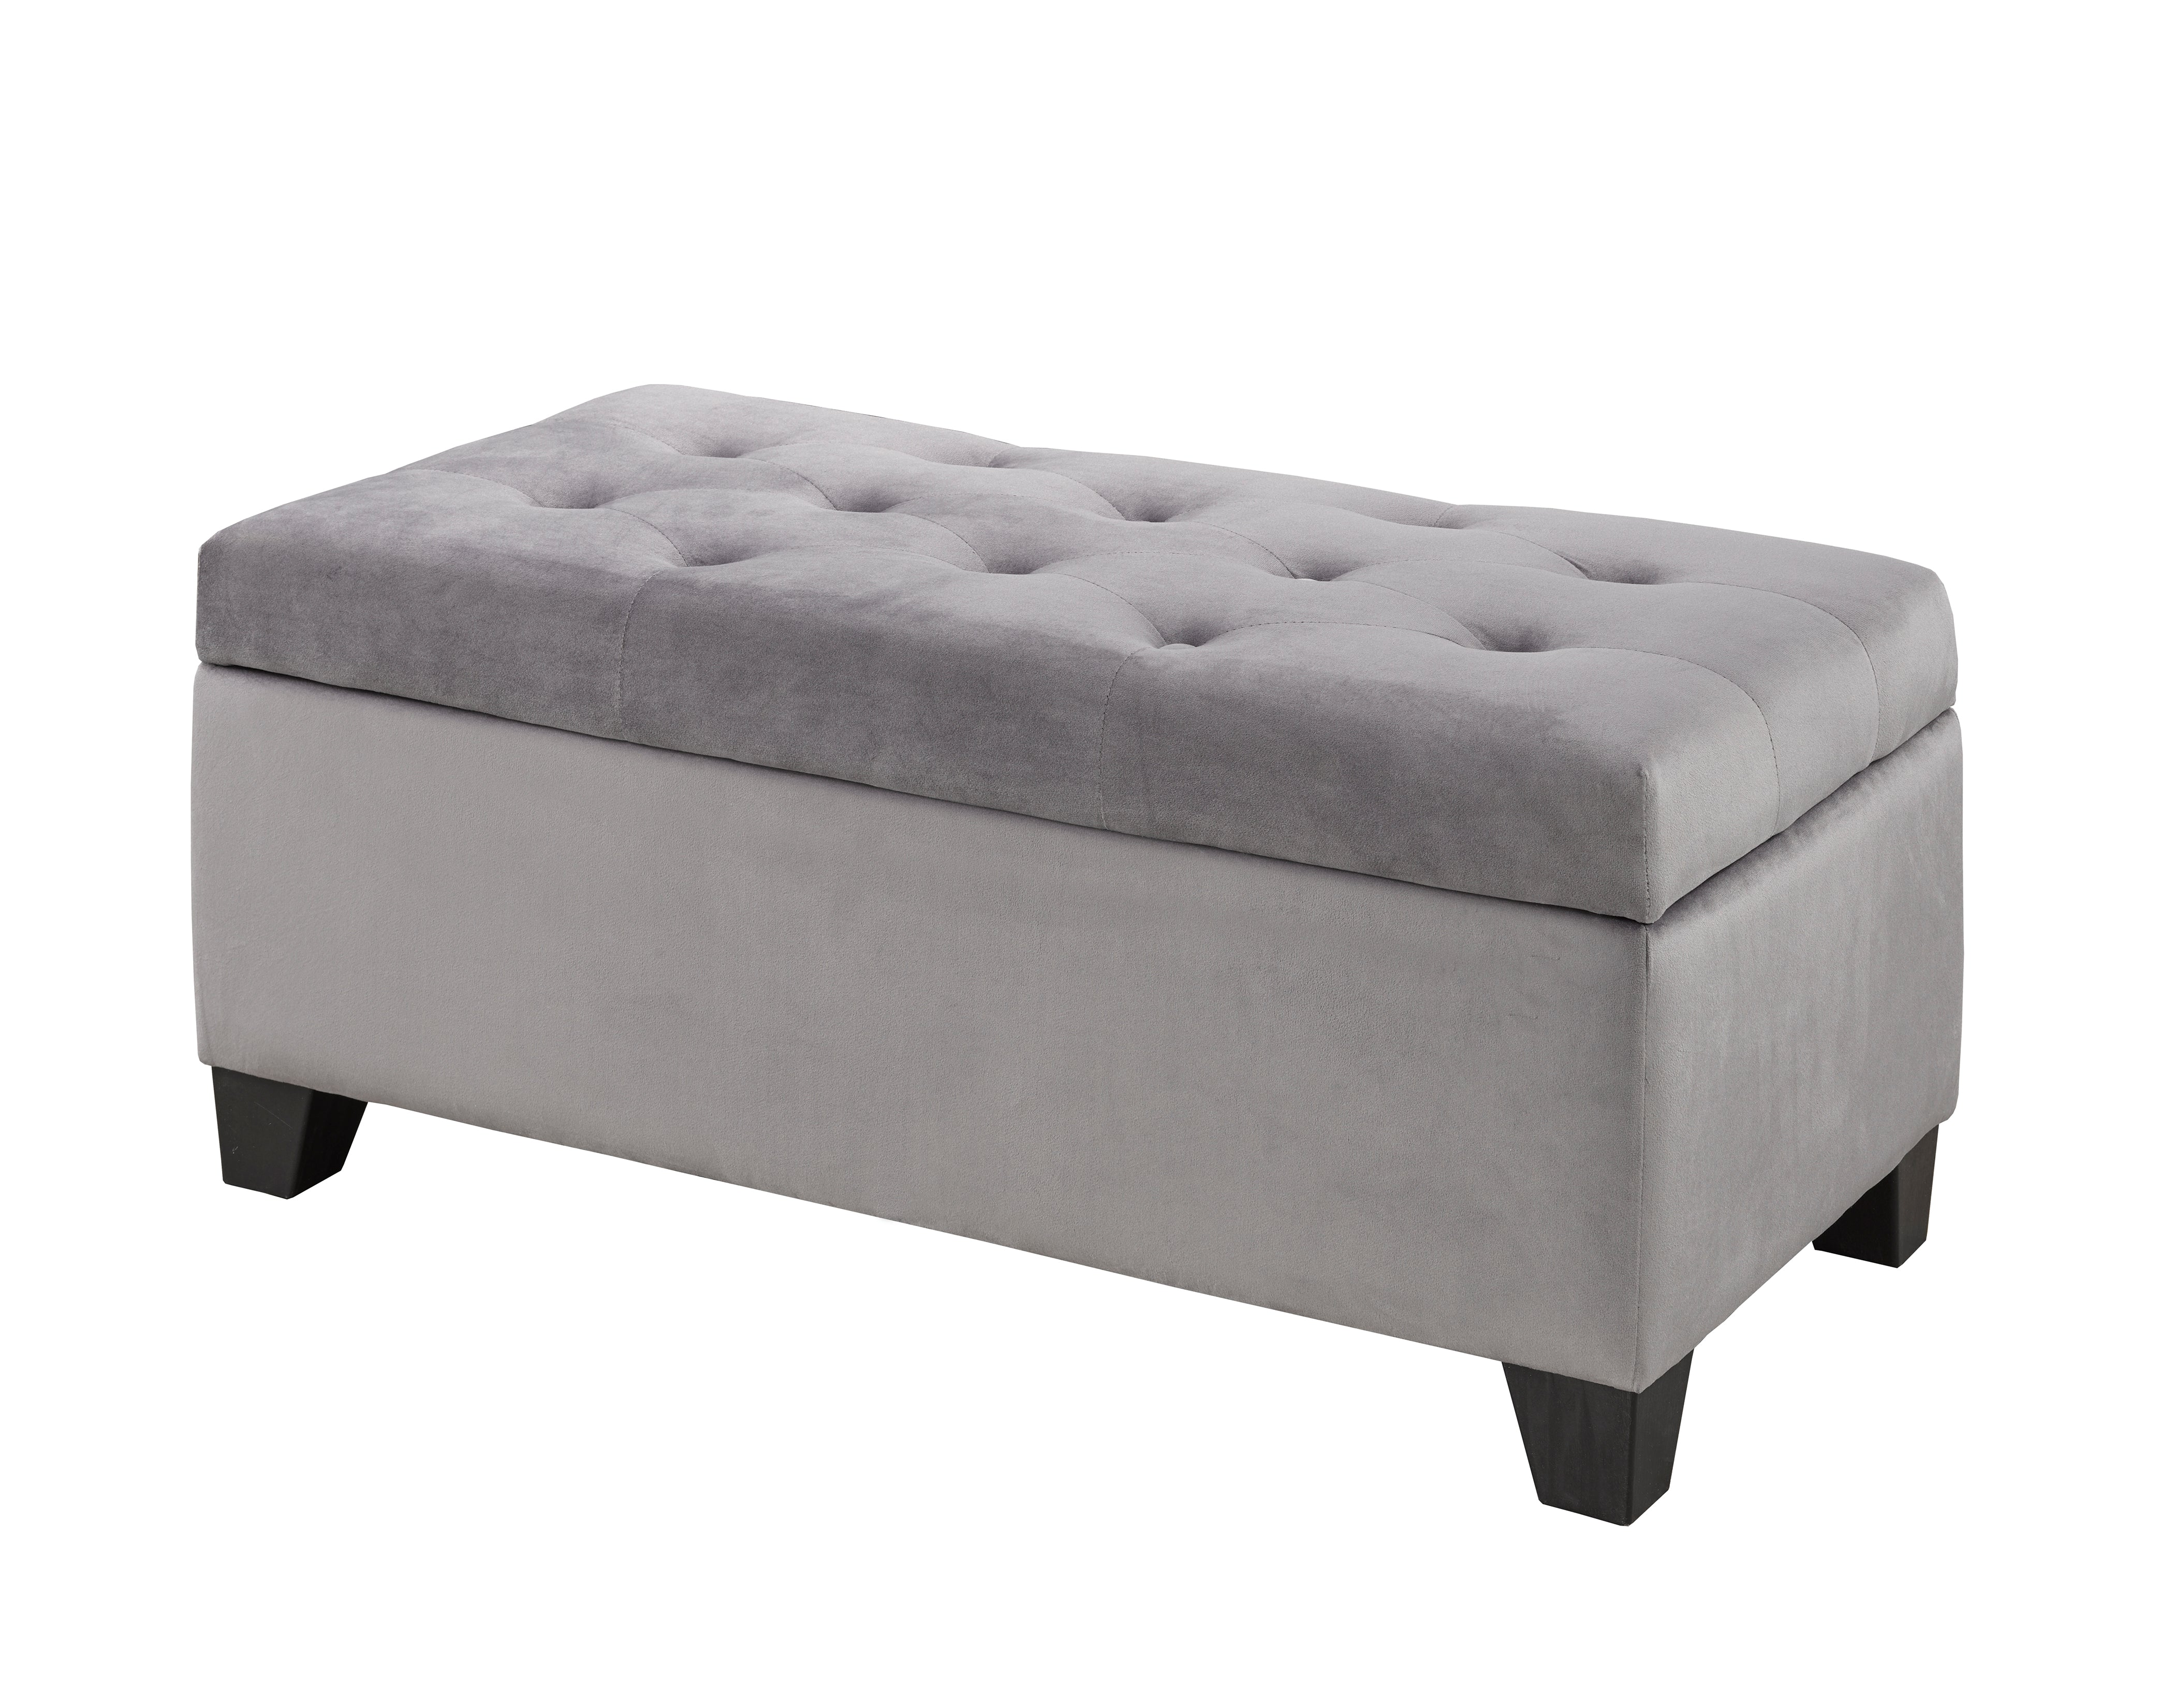 Ellis Storage Bench - Grey Velvet | Candace and Basil Furniture